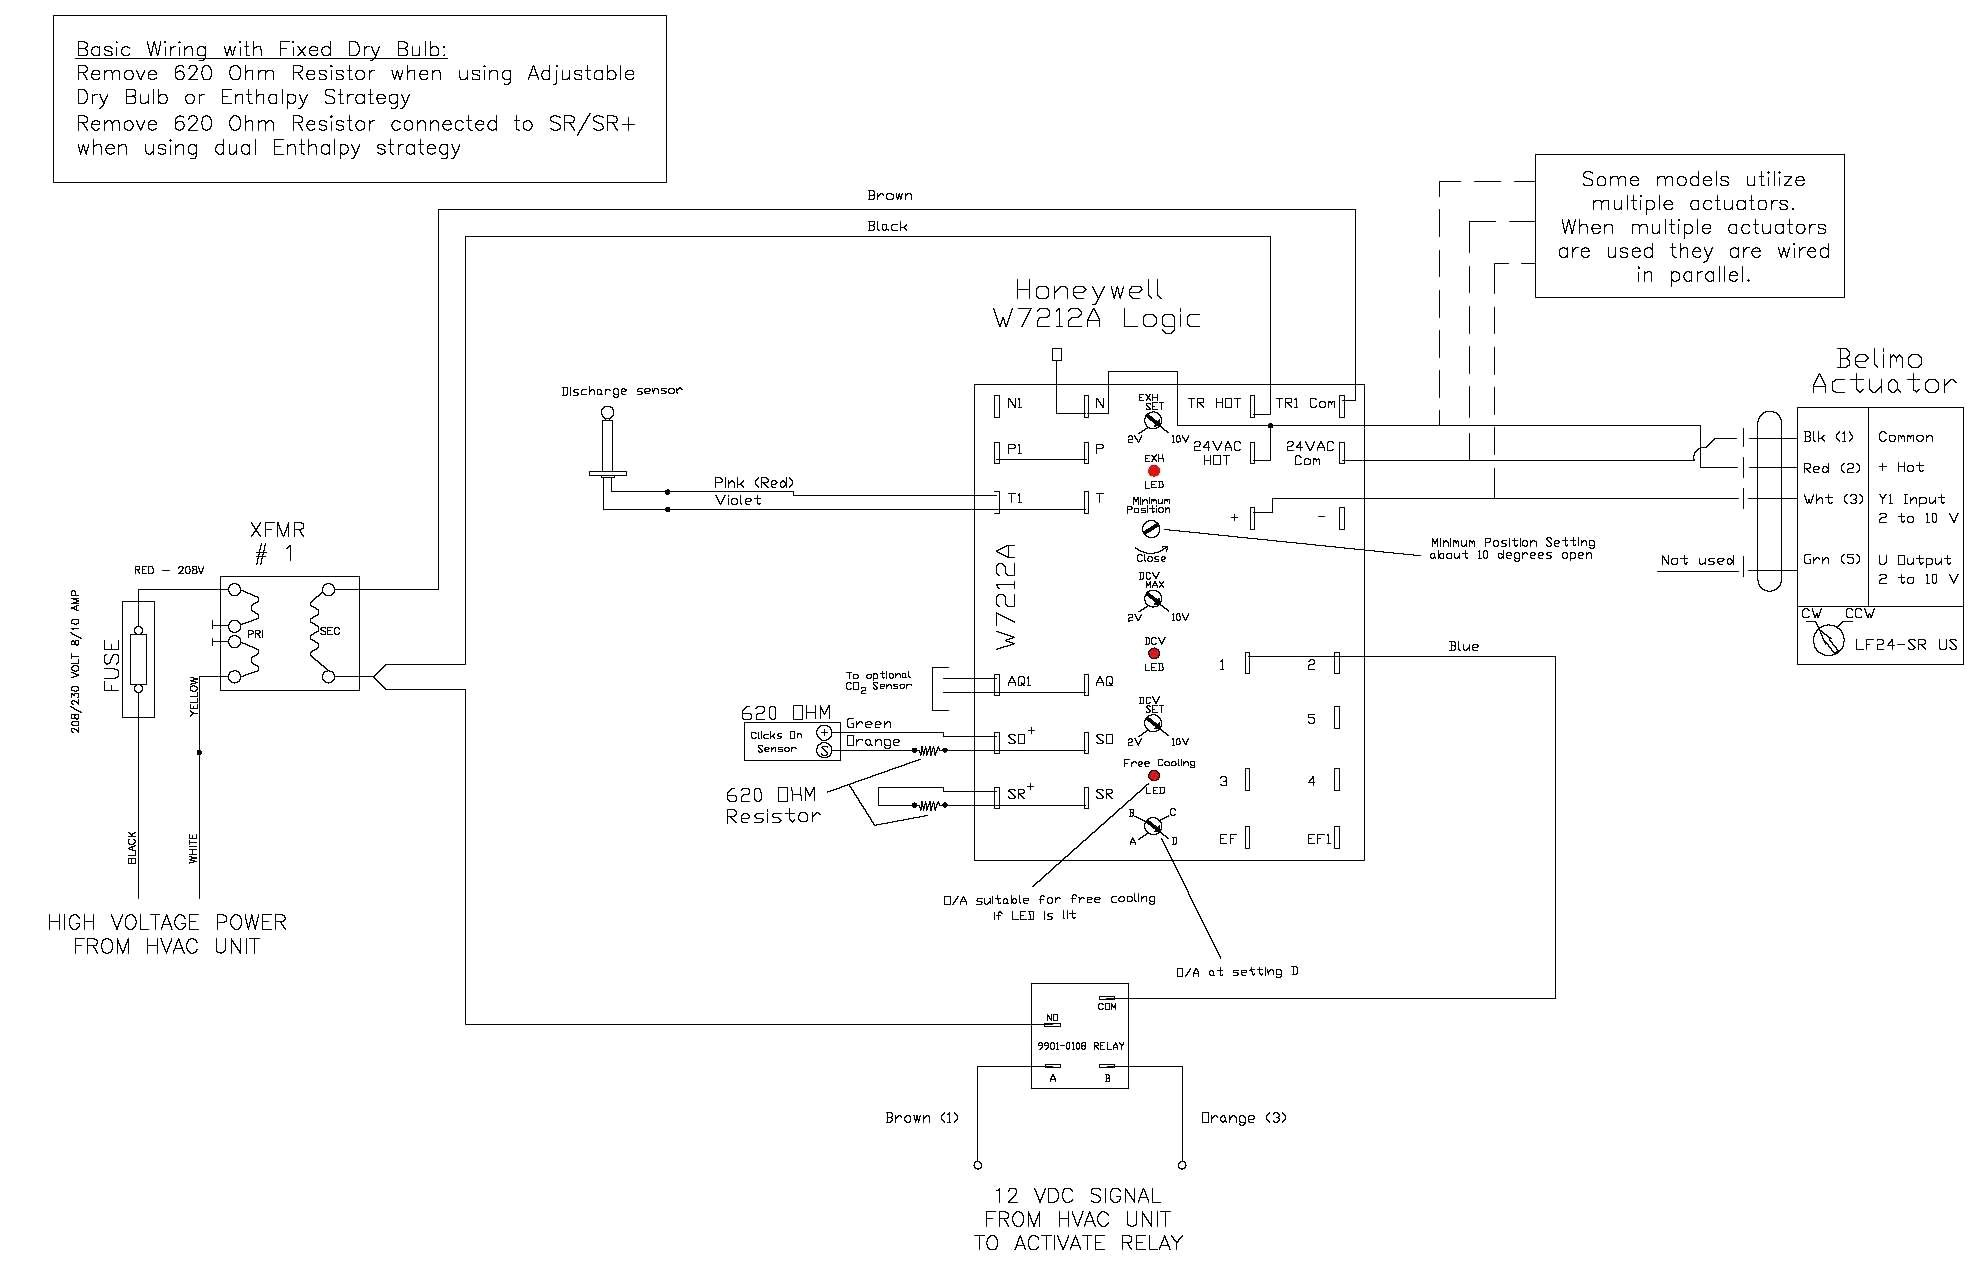 Collection Of Belimo Tfb120 S Wiring Diagram Sample on honeywell switching relay wiring diagram, honeywell burner control wiring diagram, honeywell gas valve wiring diagram, honeywell lr1620 wiring diagram, honeywell humidistat wiring diagrams, honeywell control boards wiring diagram, coleman furnace parts diagrams, honeywell thermostat wiring diagram, honeywell pro 3000 wiring diagram, aprilaire humidistat wiring diagrams, bettis actuator diagrams, 1991 prizm diagrams, honeywell boiler diagrams, honeywell smart valve wiring diagram, honeywell zone control wiring guide, honeywell diaphragm actuator, honeywell actuator parts, honeywell ct410b wiring diagram, honeywell louver actuator, honeywell thermostat schematic diagrams,